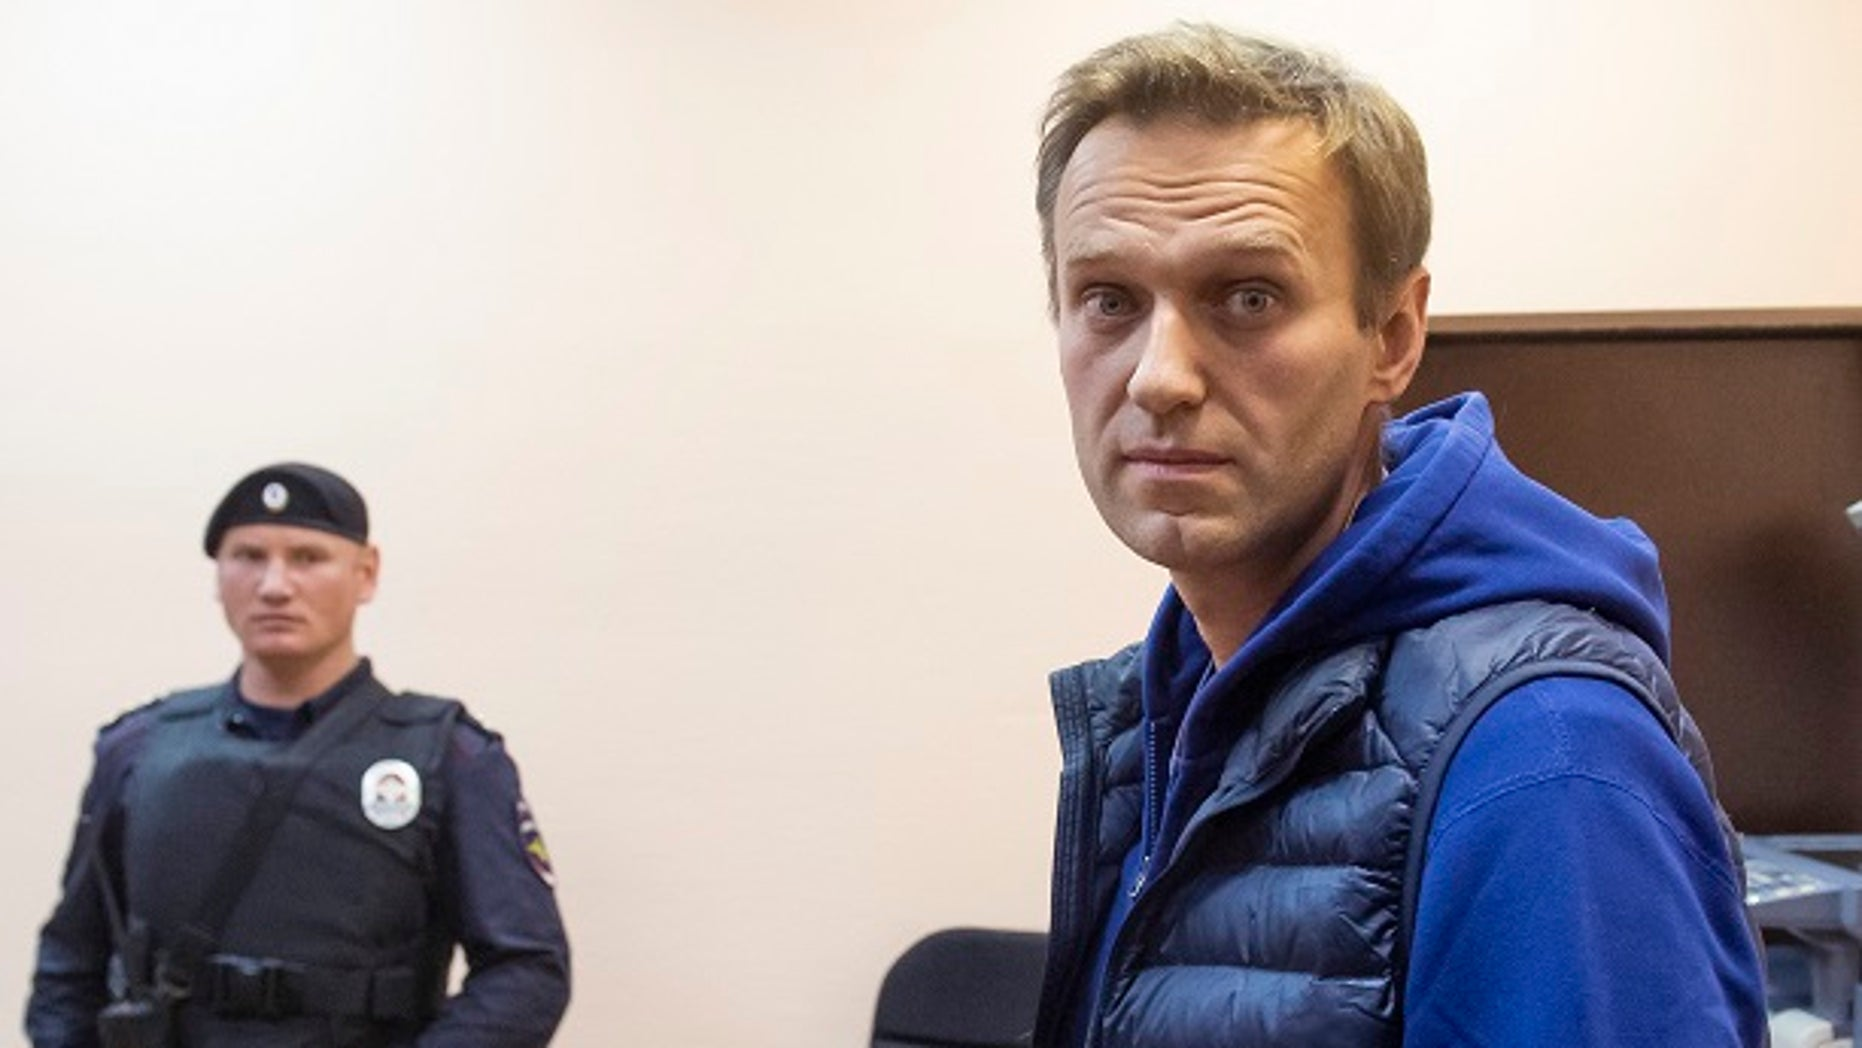 Russian opposition activist Alexei Navalny stands in a court room as he waits for a session in Moscow, Russia, Monday, Sept. 24, 2018. Navalny was released from jail on Monday at the end of a 30-day sentence for staging an unsanctioned protest — and then immediately detained again on staging another past protest. (AP Photo/Dmitry Serebryakov)